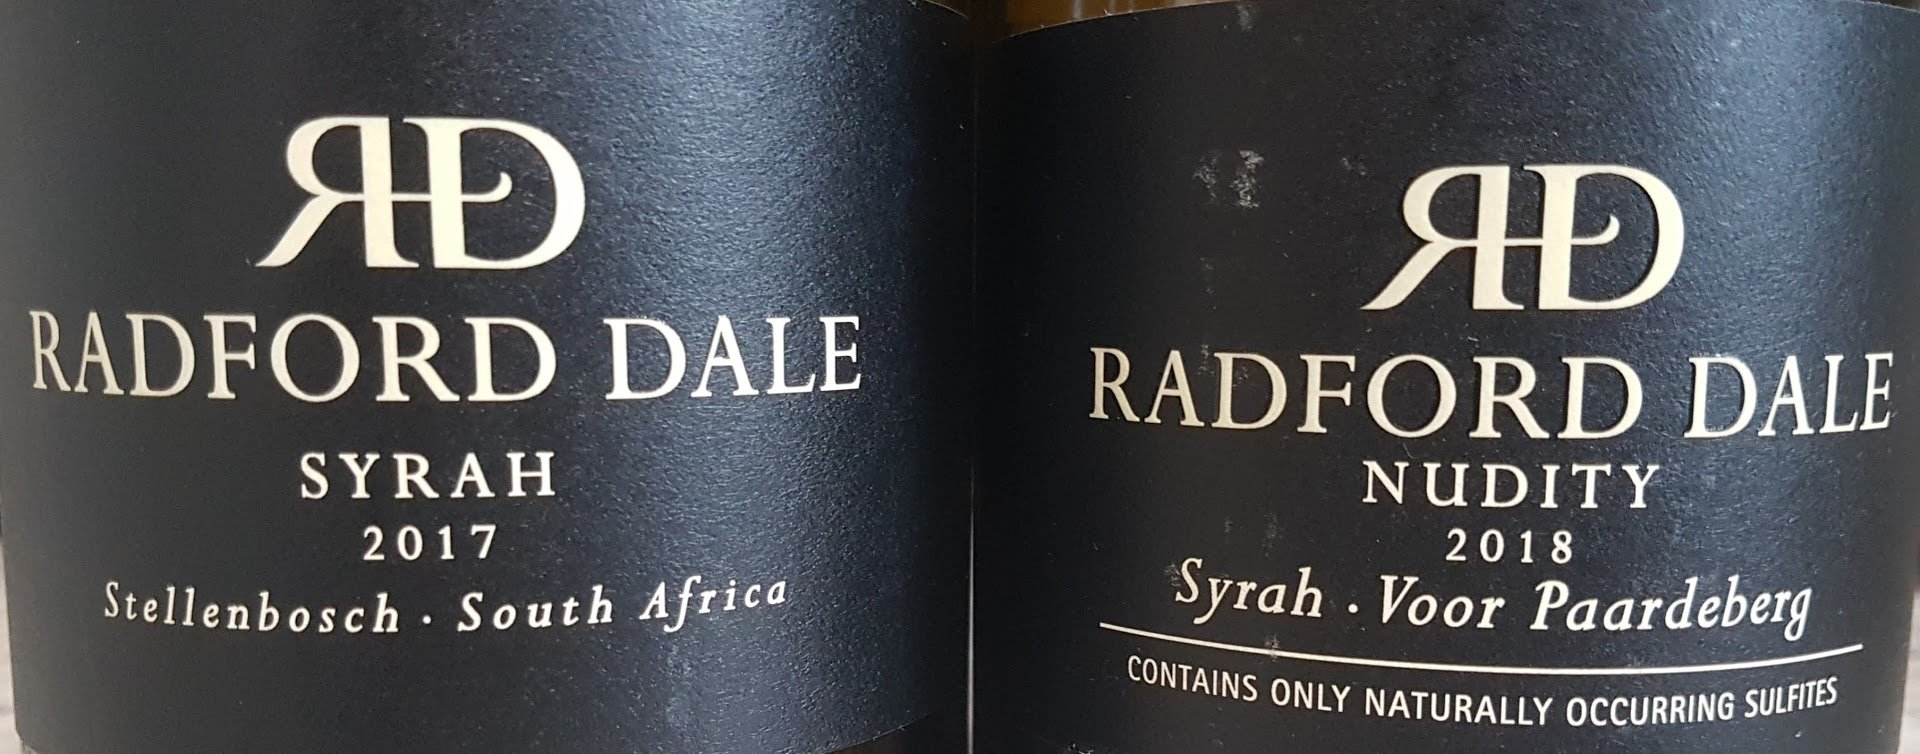 Radford Dale Syrah 2017 Vs Nudity Syrah 2018 photo